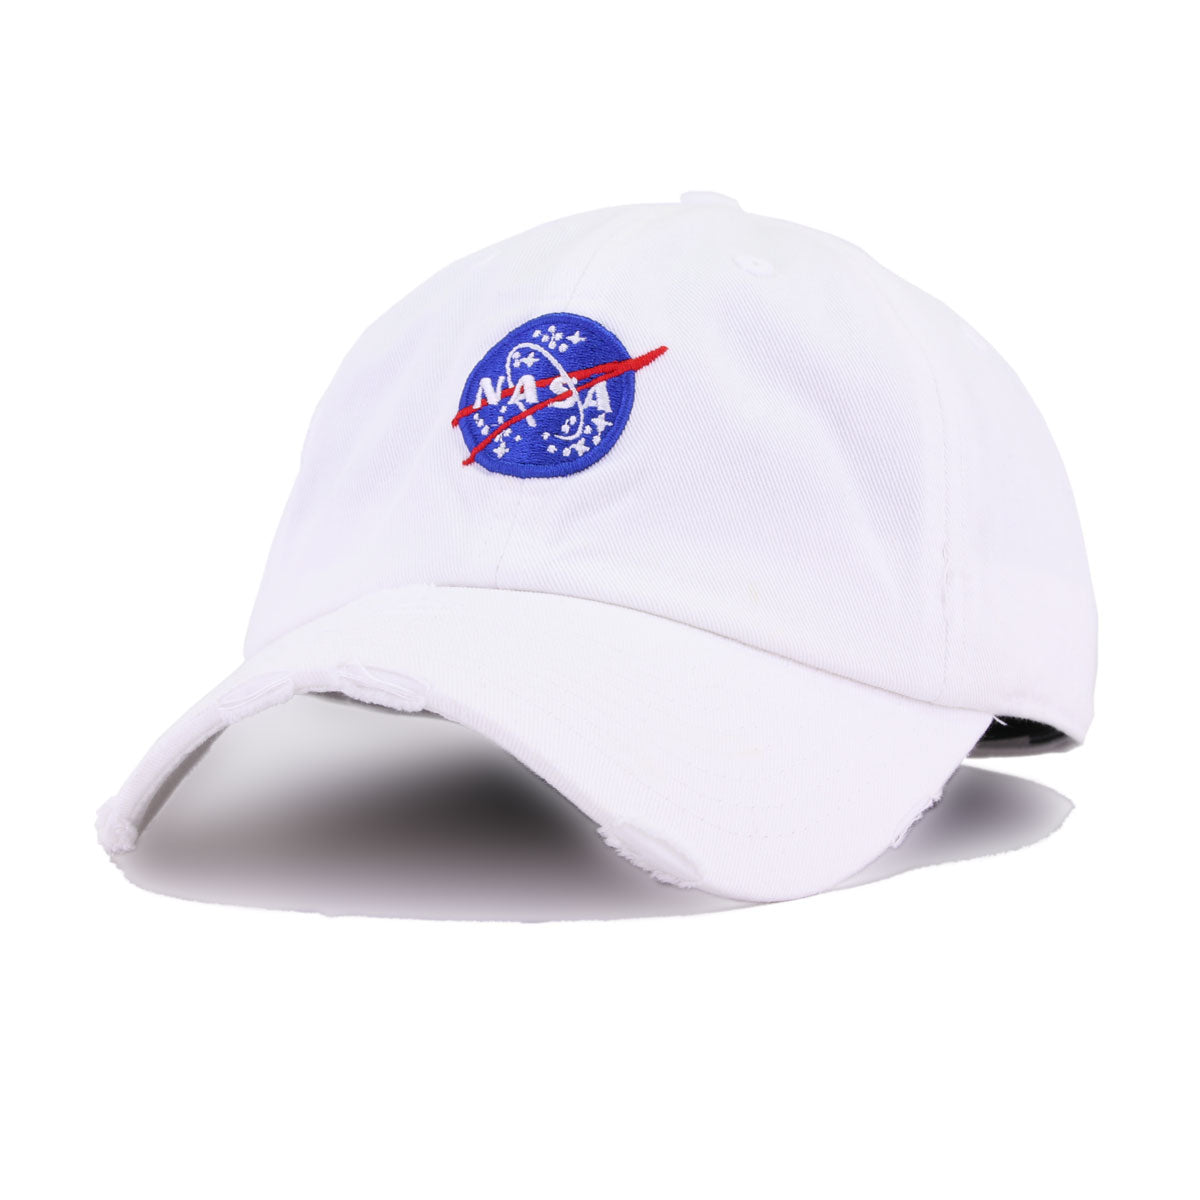 Distressed NASA Meatball White KBEthos Vintage Dad Hat